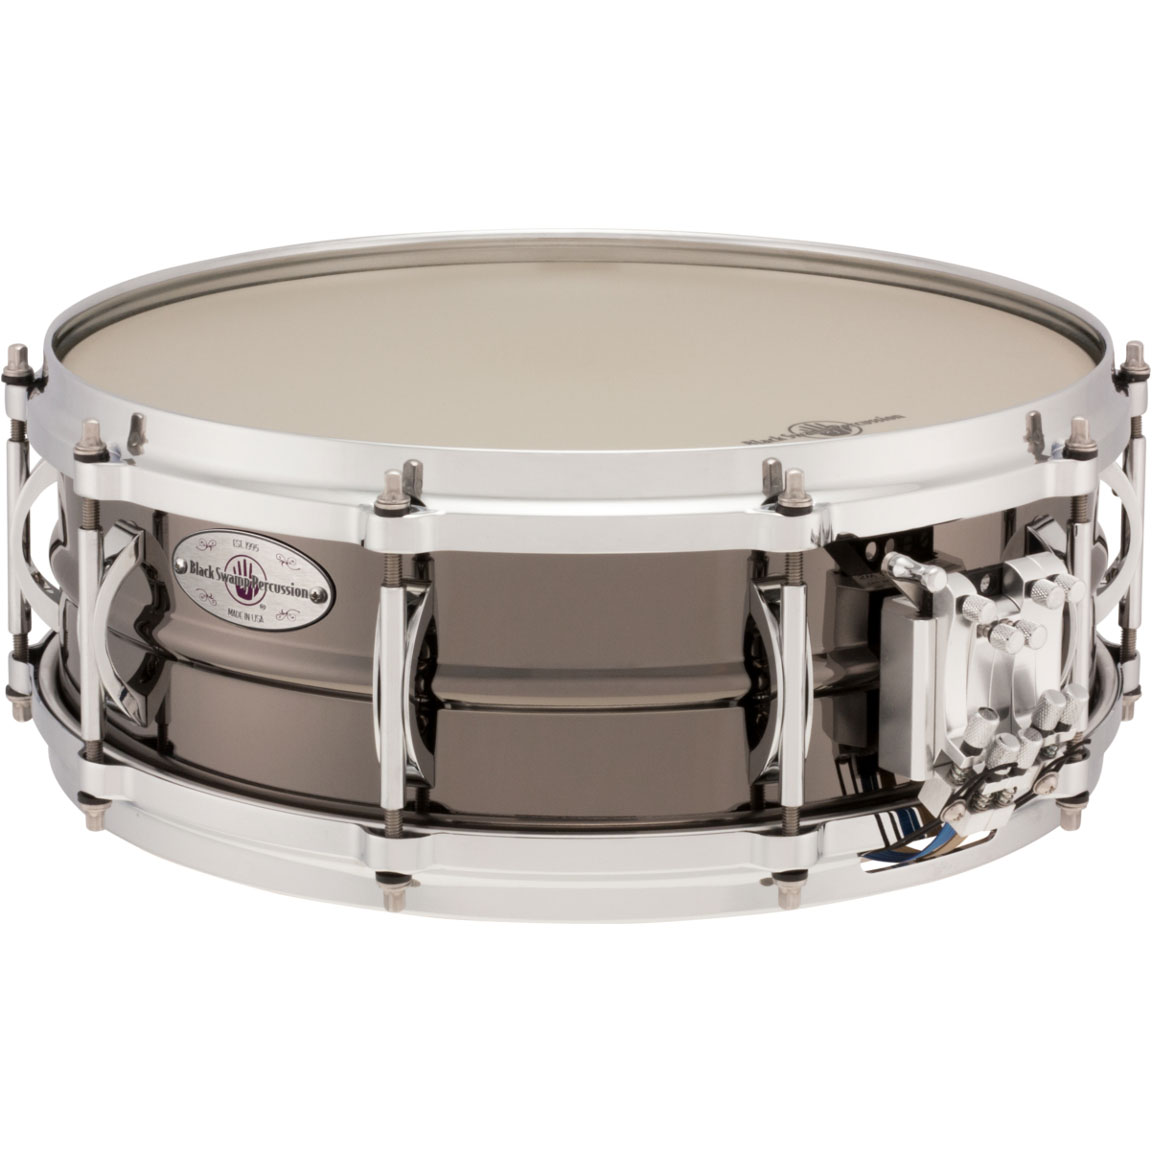 "Black Swamp 5"" x 14"" Multisonic Brass Concert Snare Drum"